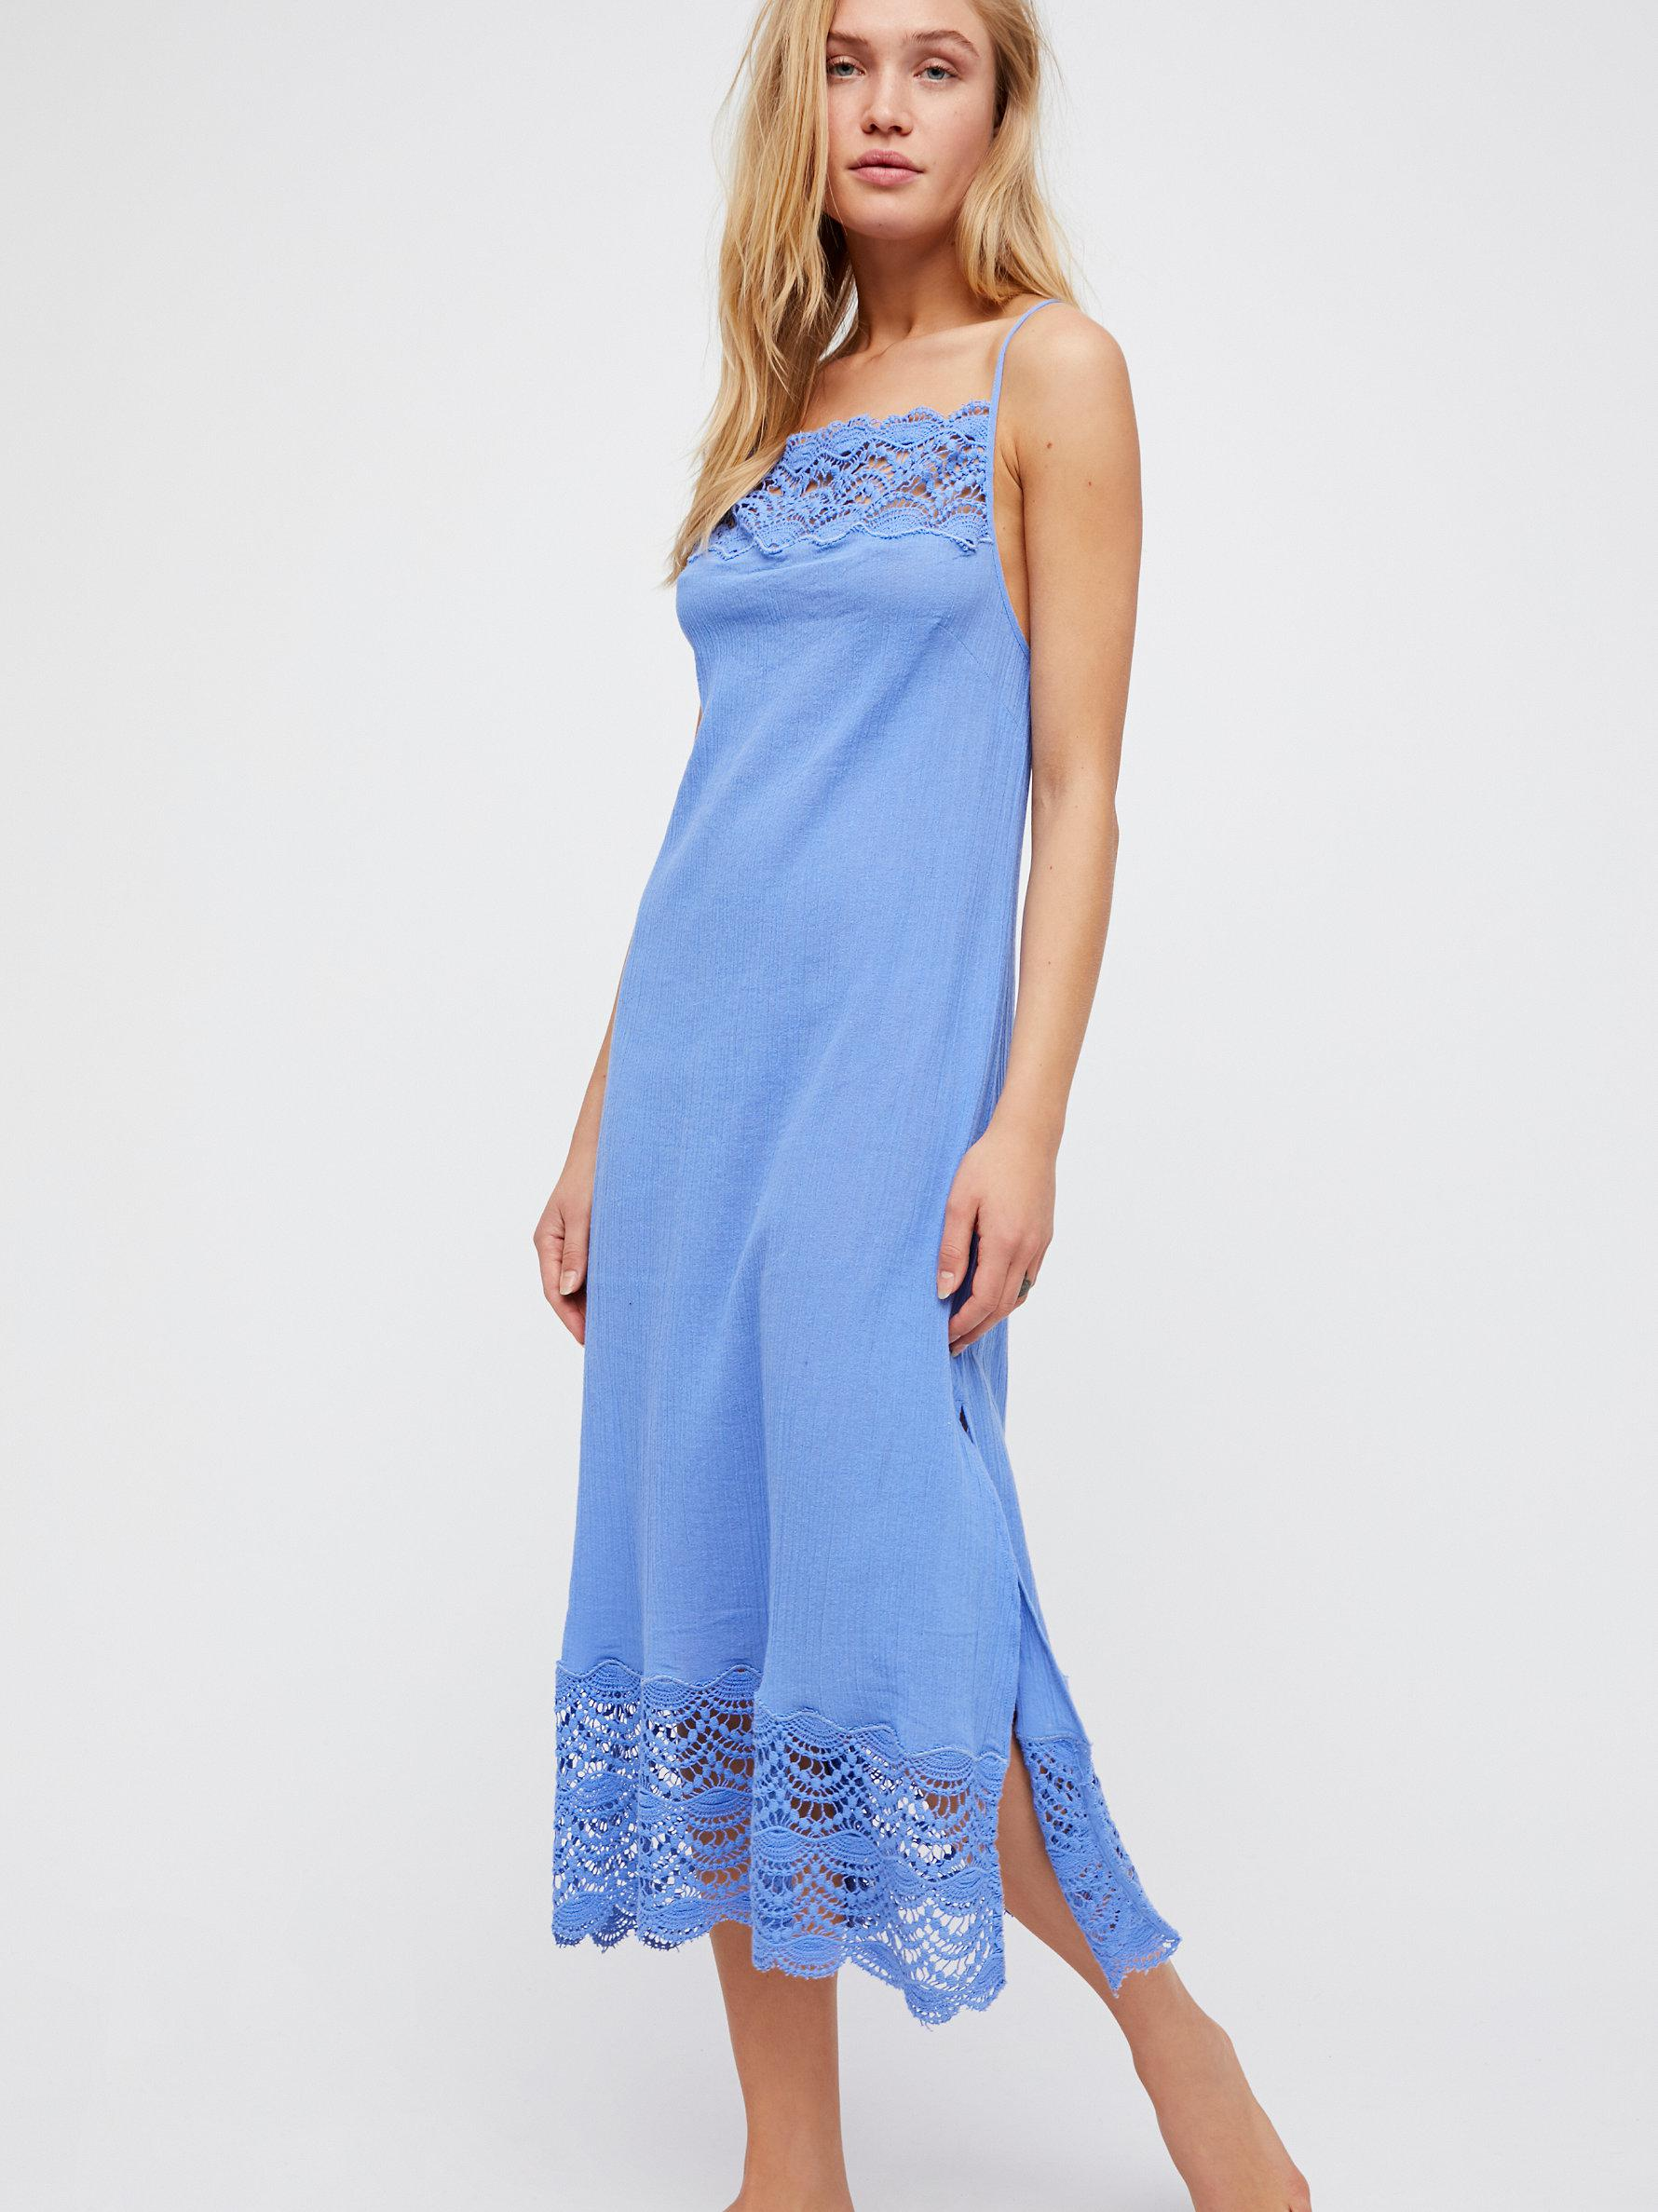 3f9bf112a1 Free People Abbie Cotton Maxi Dress in Blue - Lyst